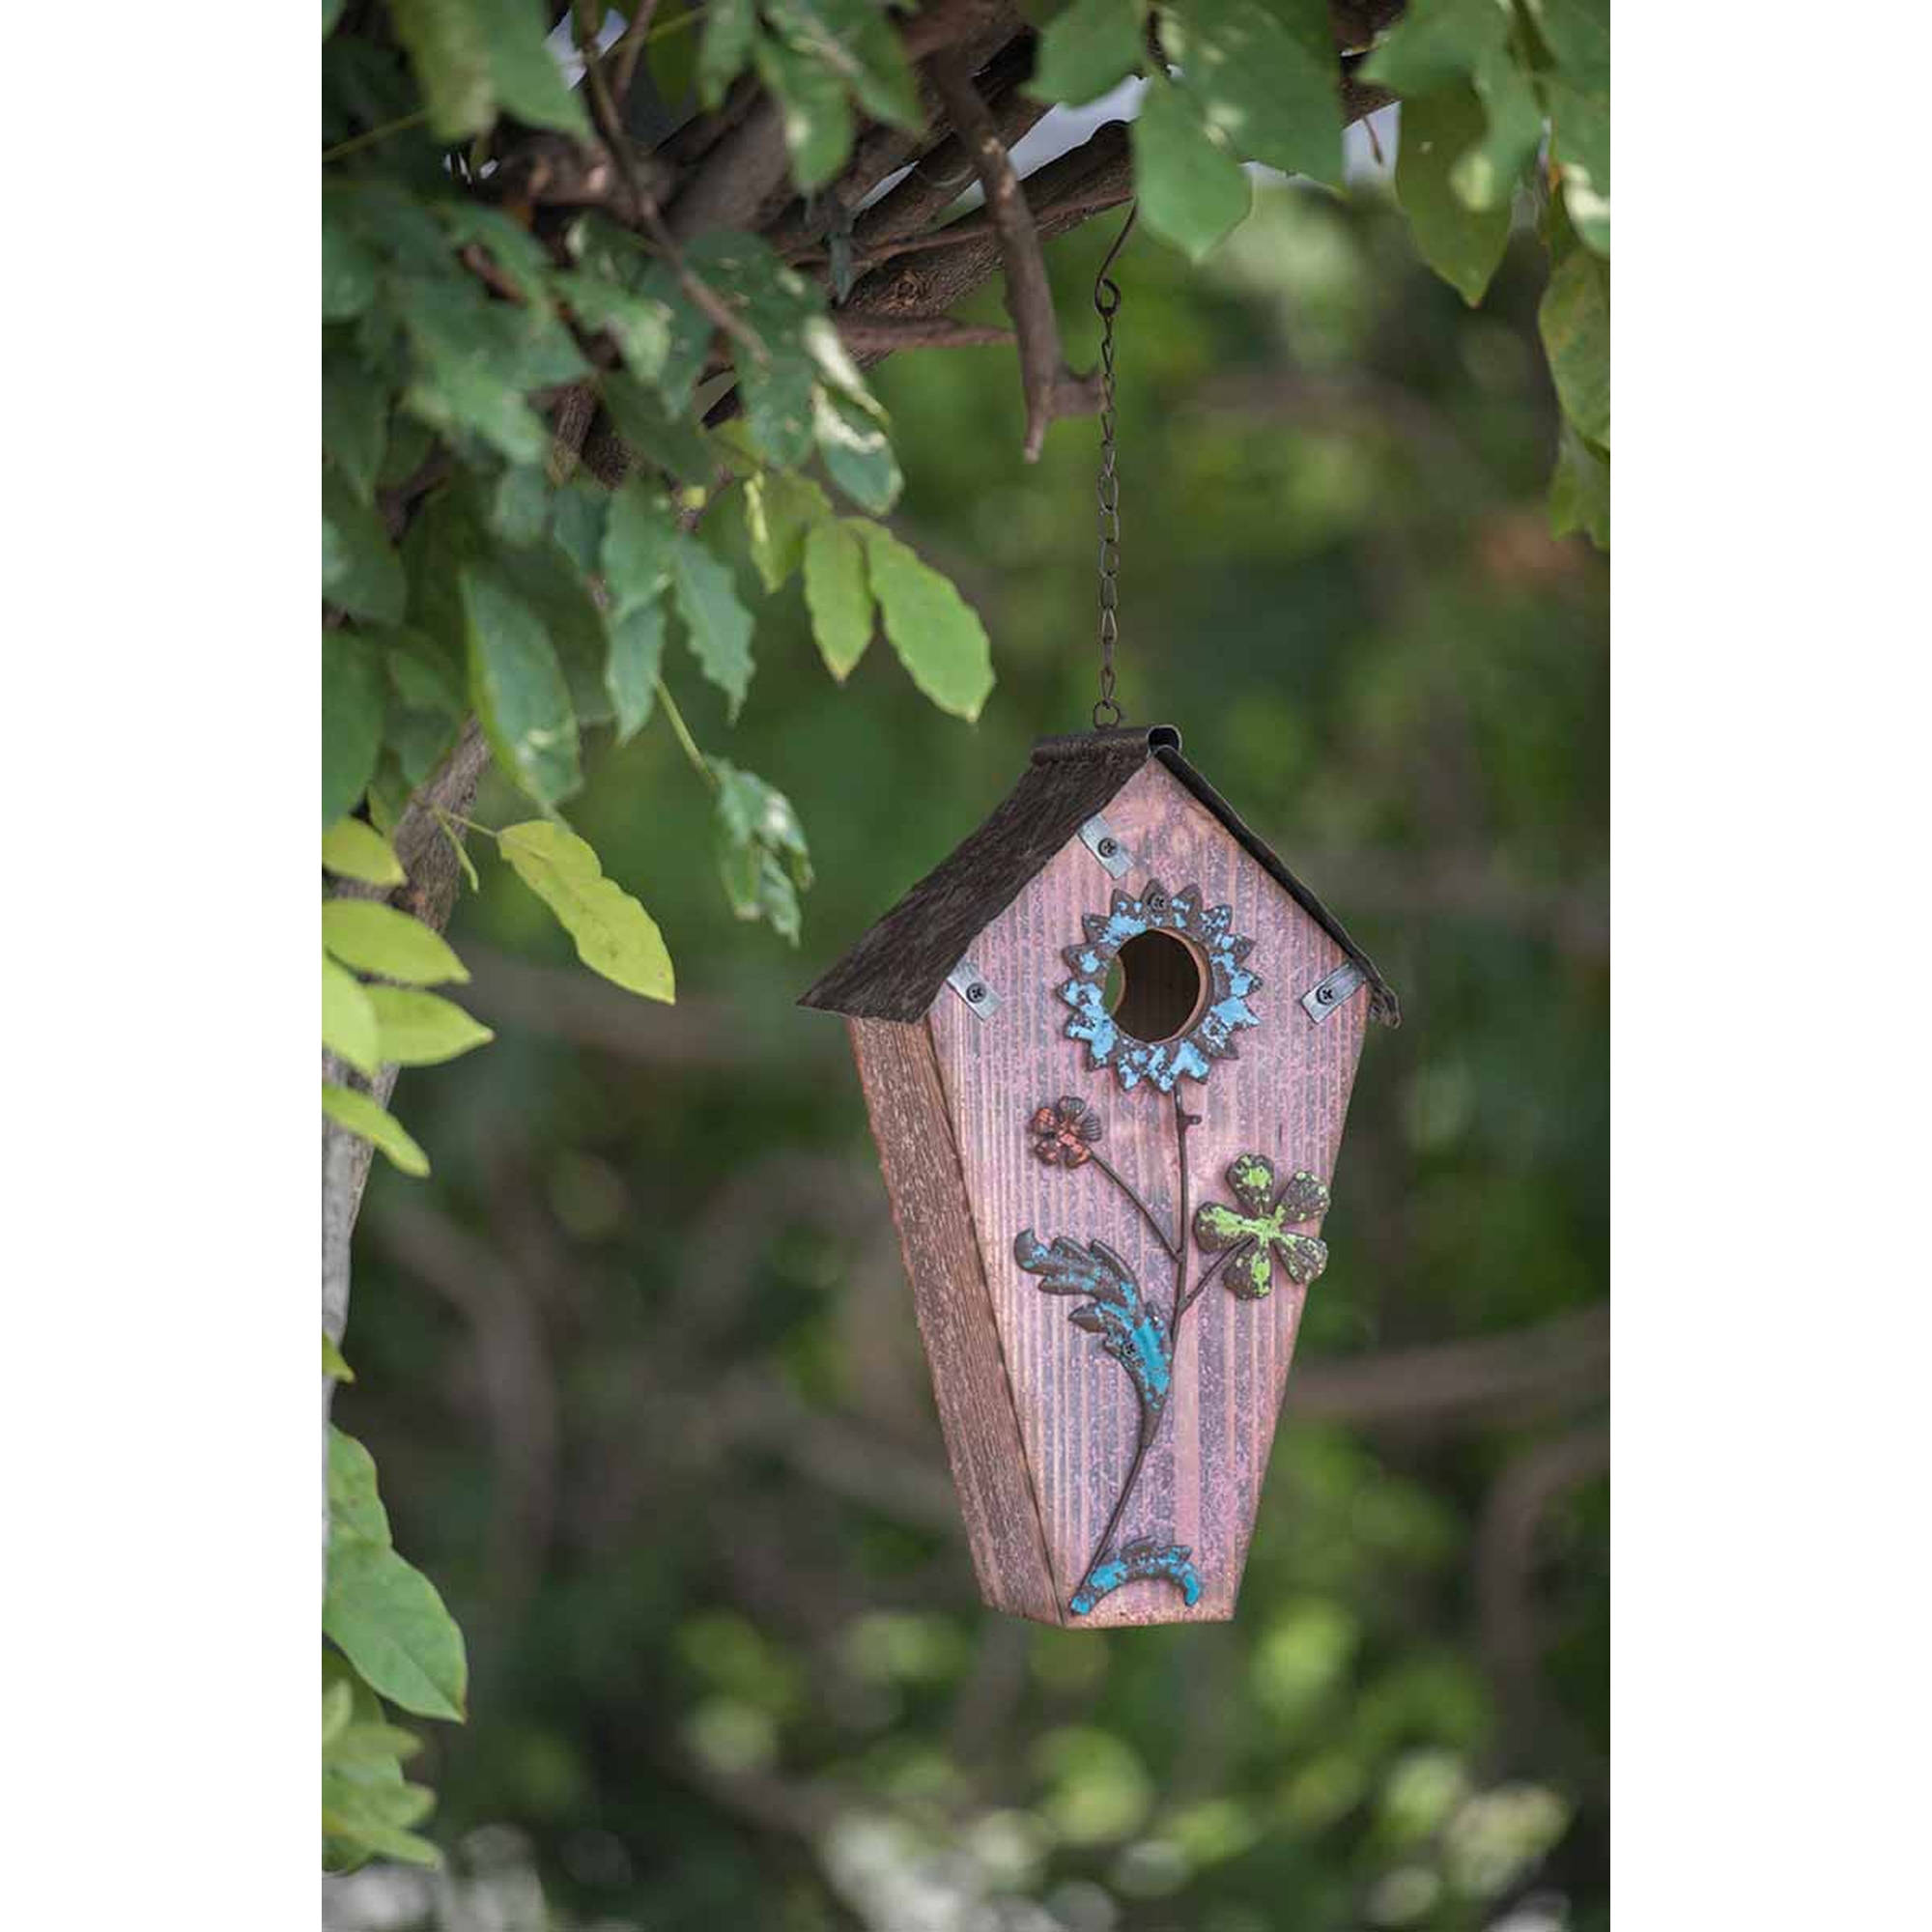 "Sunjoy 110308002 Hand-Painted Wood Flower Birdhouse, Dusty Rose, 23"" by SunNest Services LLC"